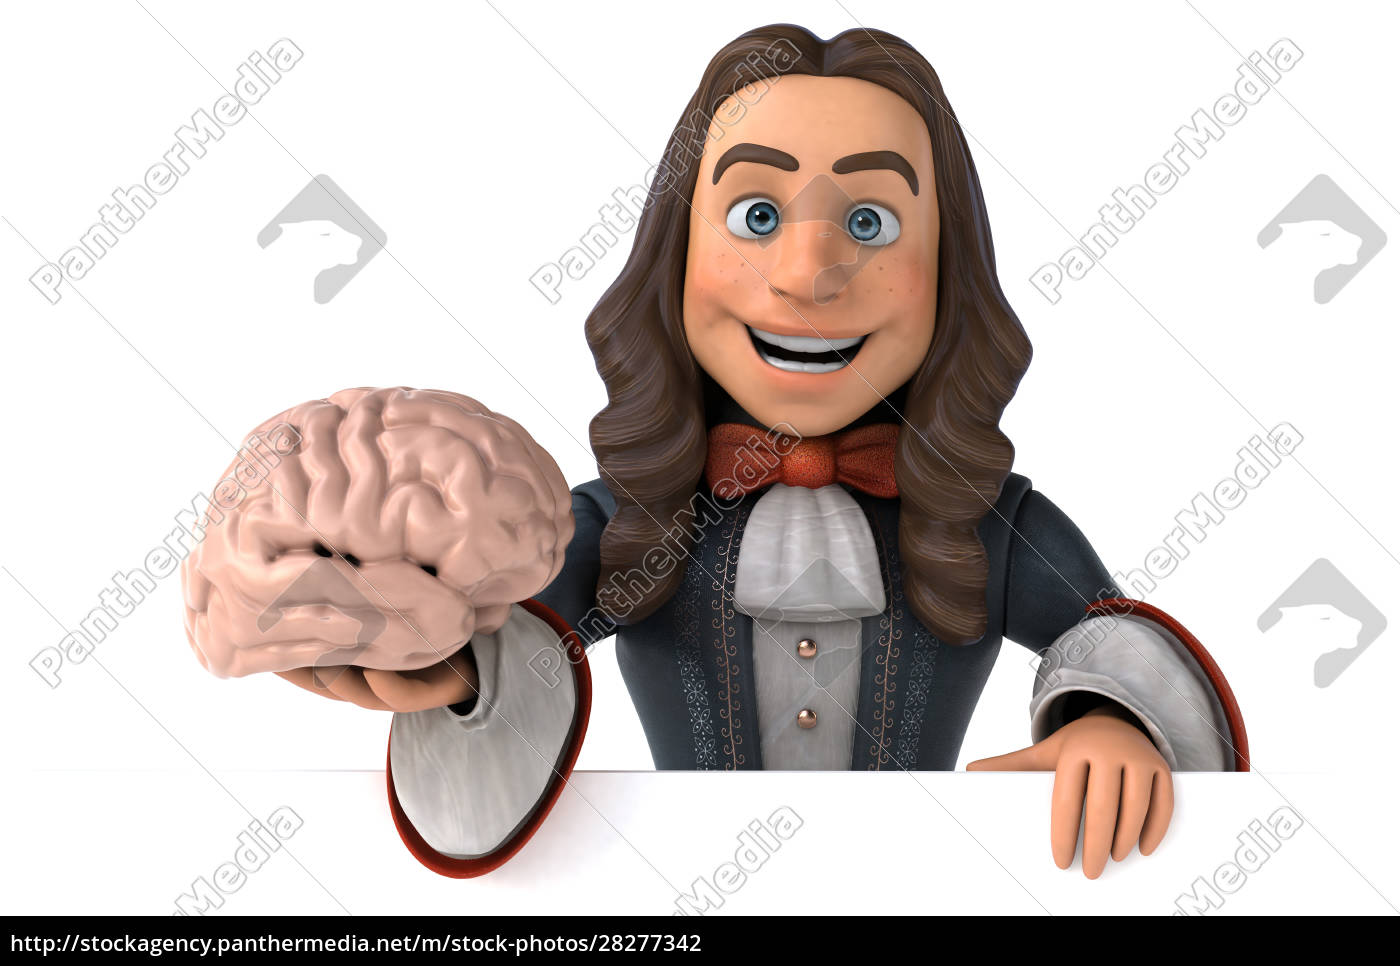 3d, illustration, of, a, cartoon, man - 28277342